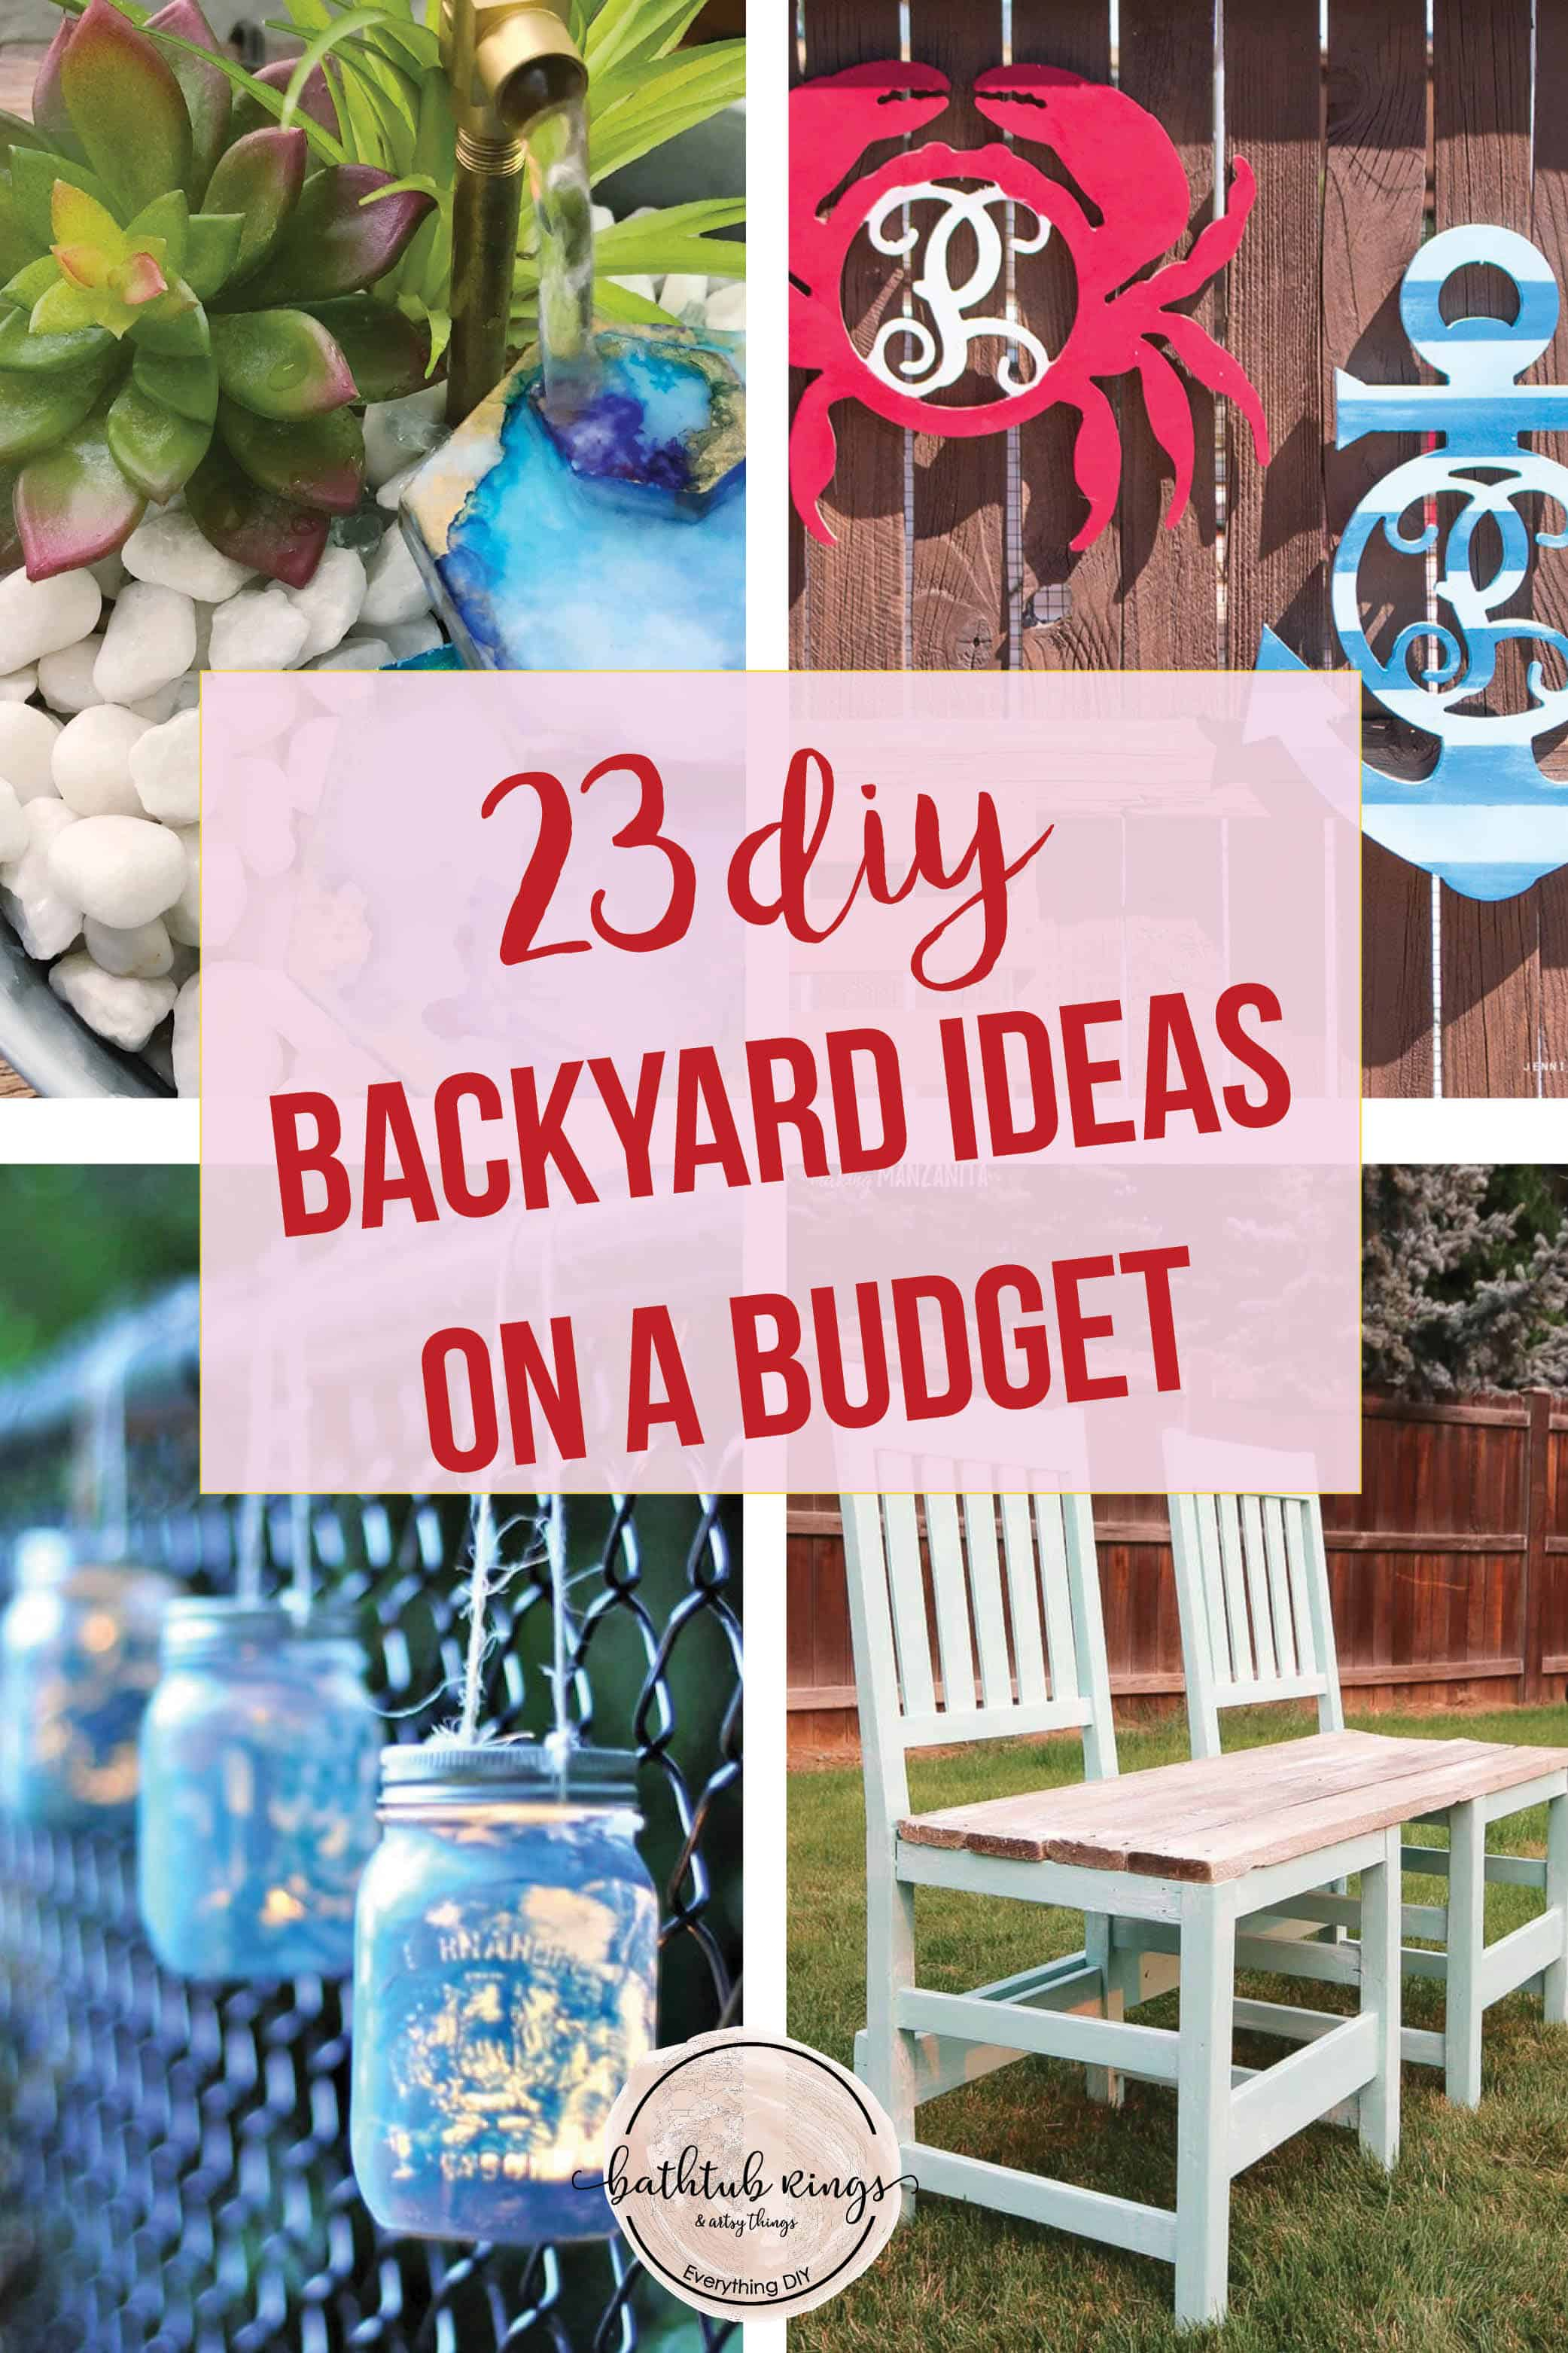 A collage of backyard ideas.